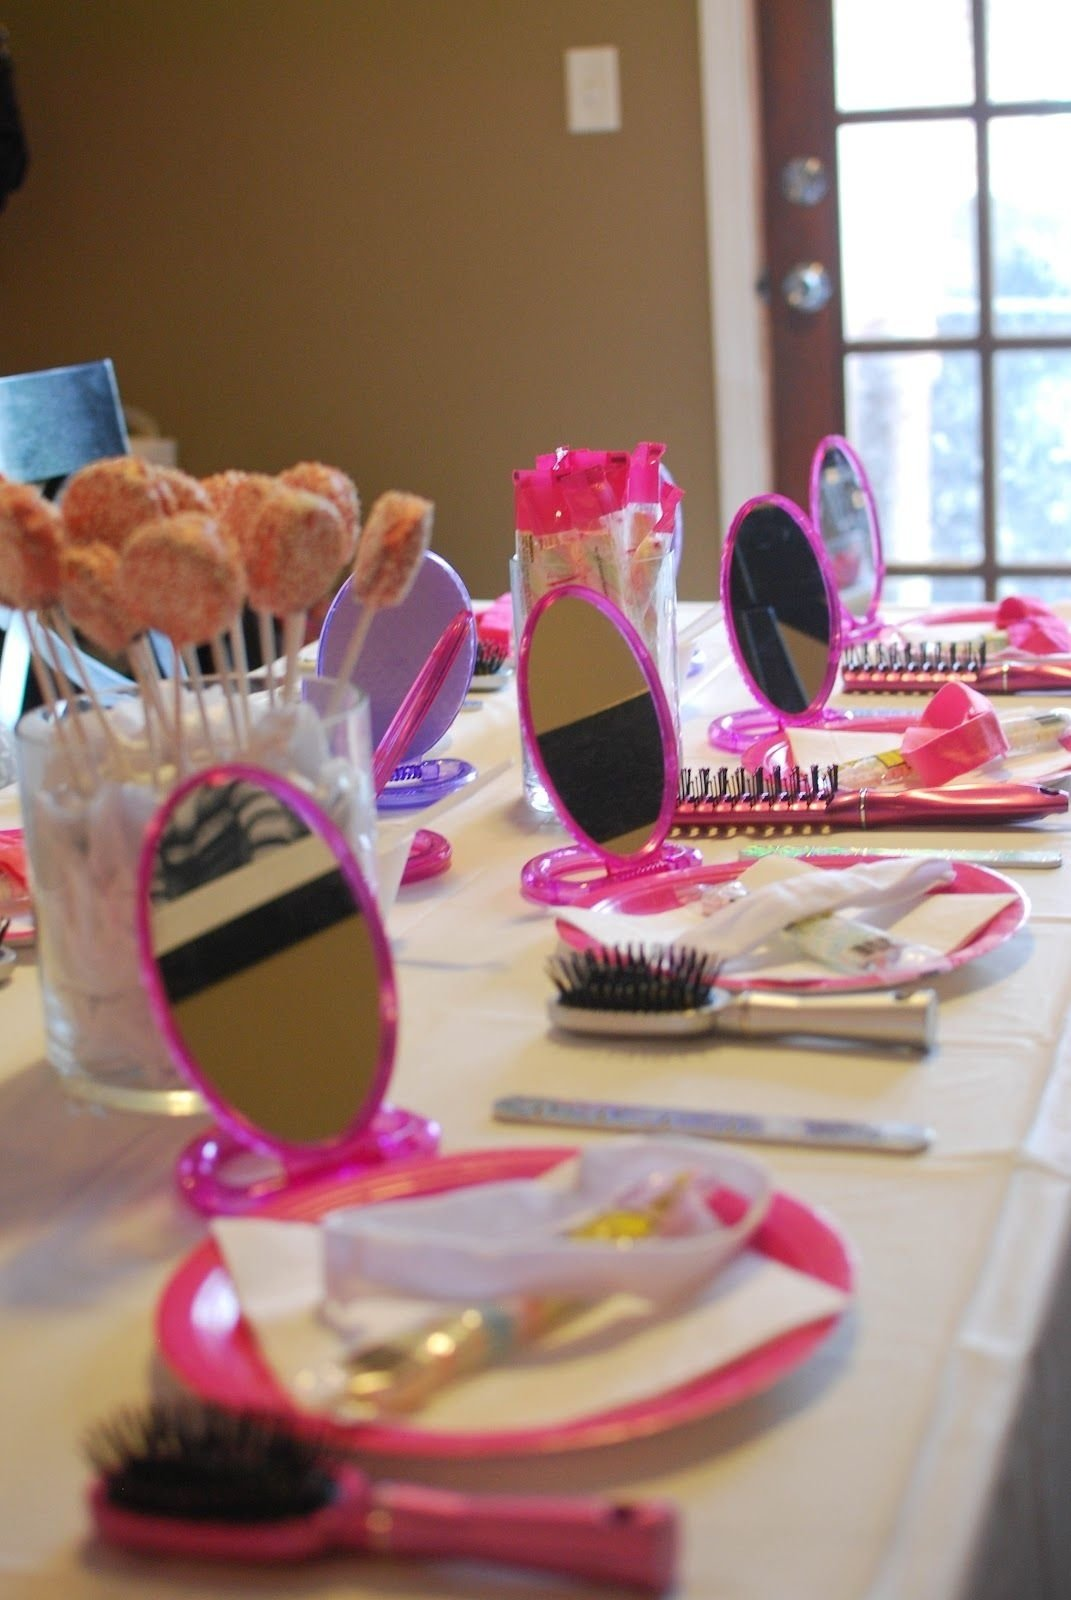 10 Stylish Sleepover Ideas For Year Olds Spa Party 8 Yr Old Girls